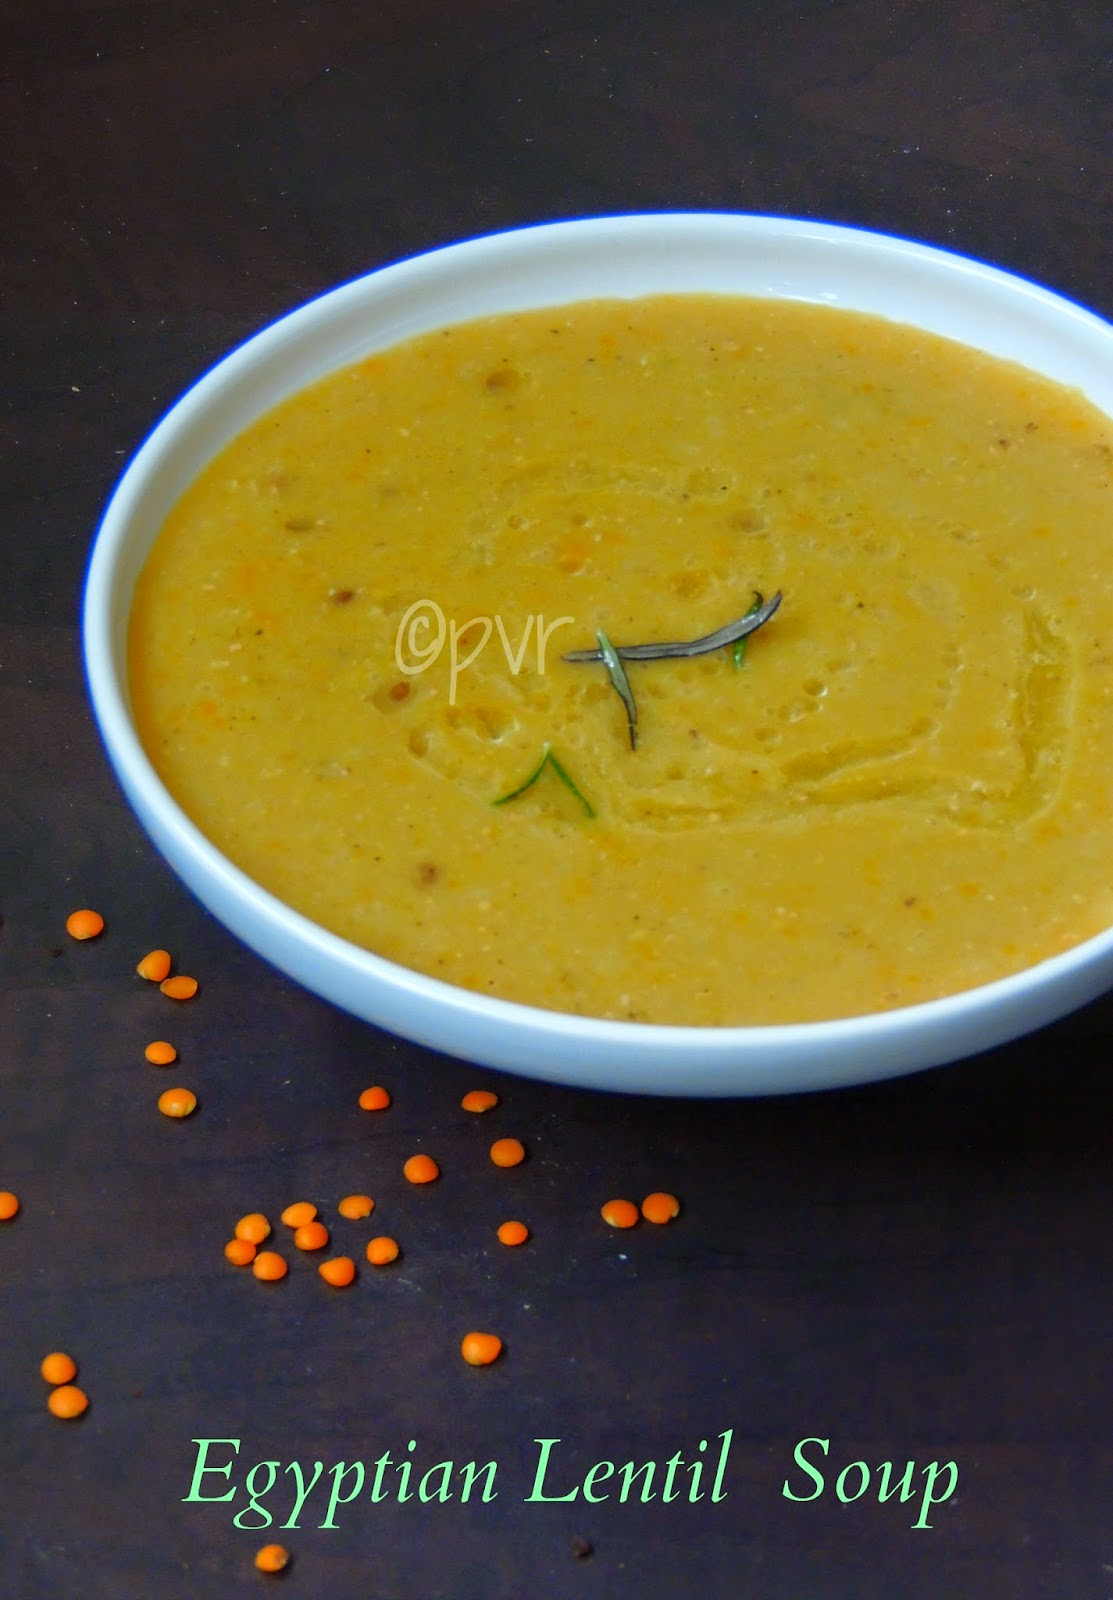 Vegan Egyptian Lentil Soup, Shorba adas, shorab ads, Egyptian Lentil Soup